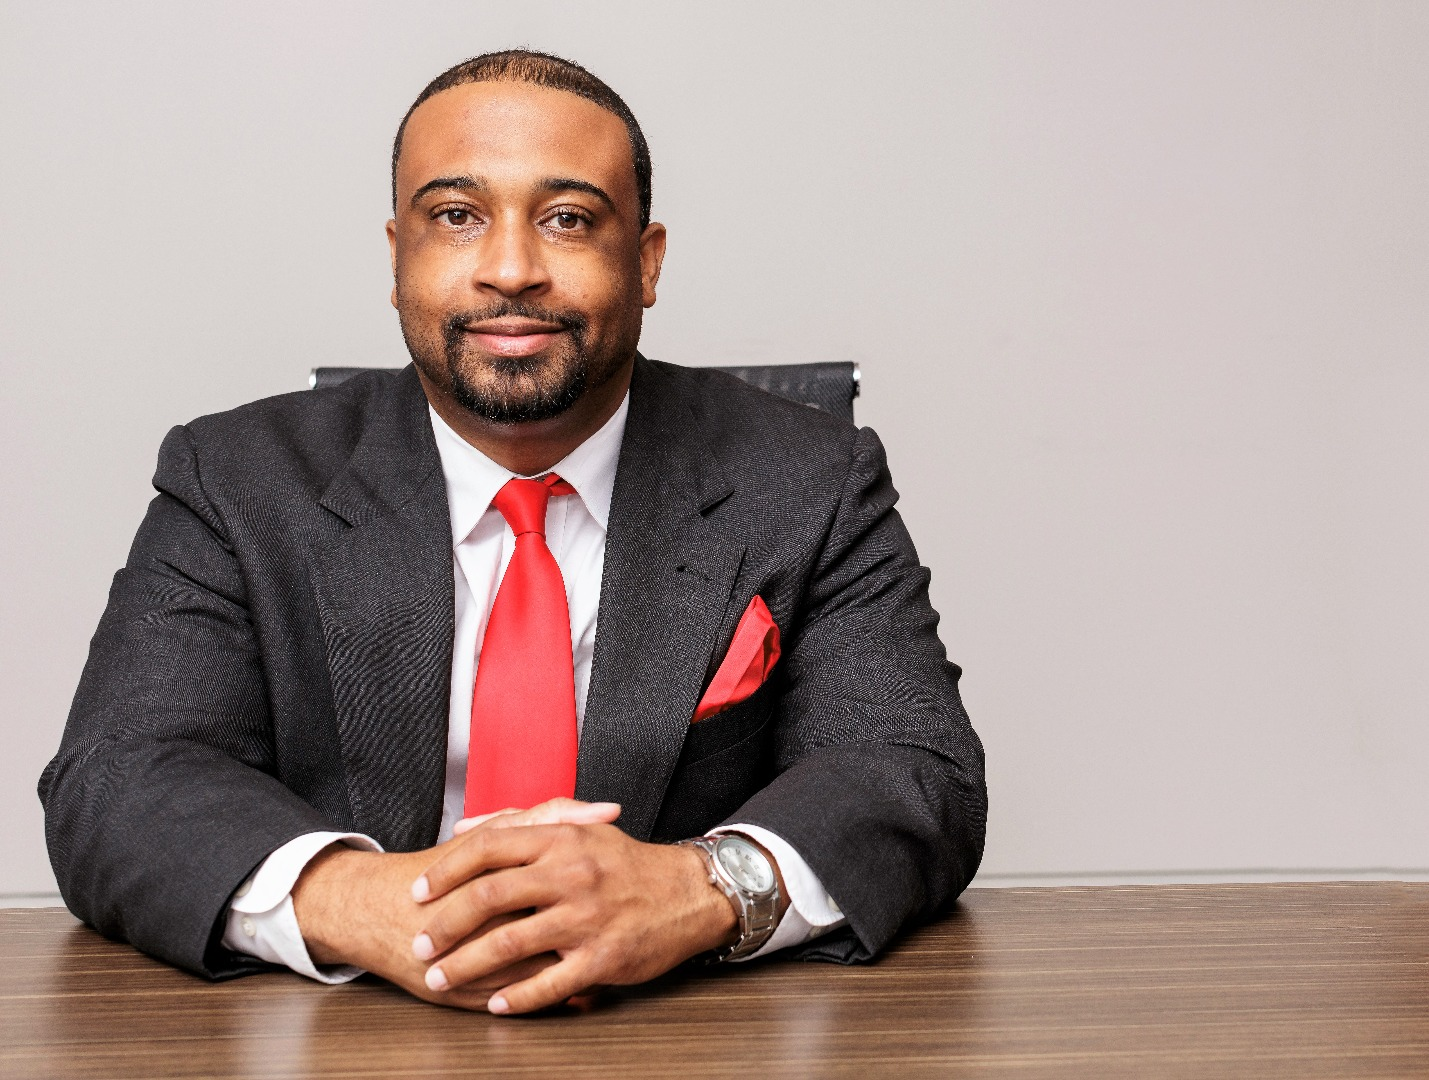 Meet Darius King, Realtor